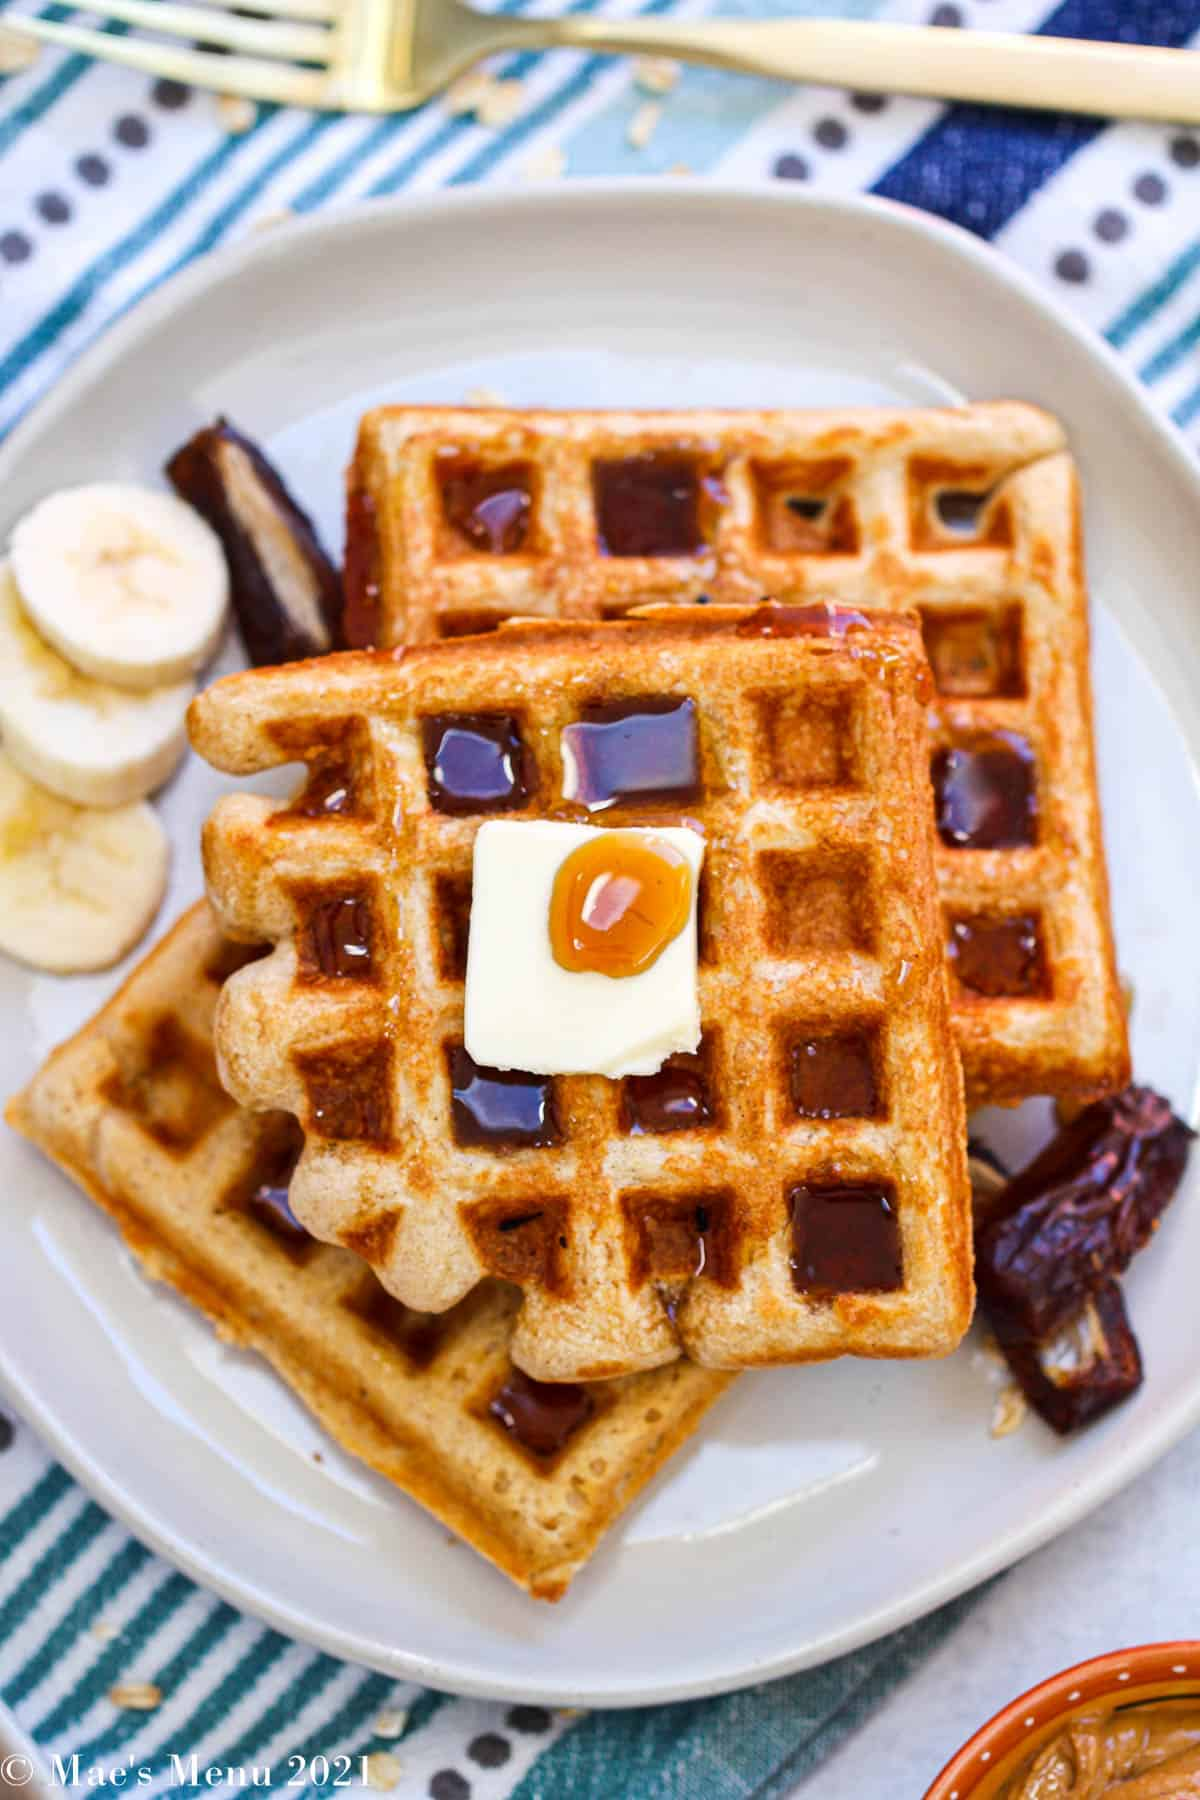 An overhead shot of a plate of whole wheat waffles with bananas and dates